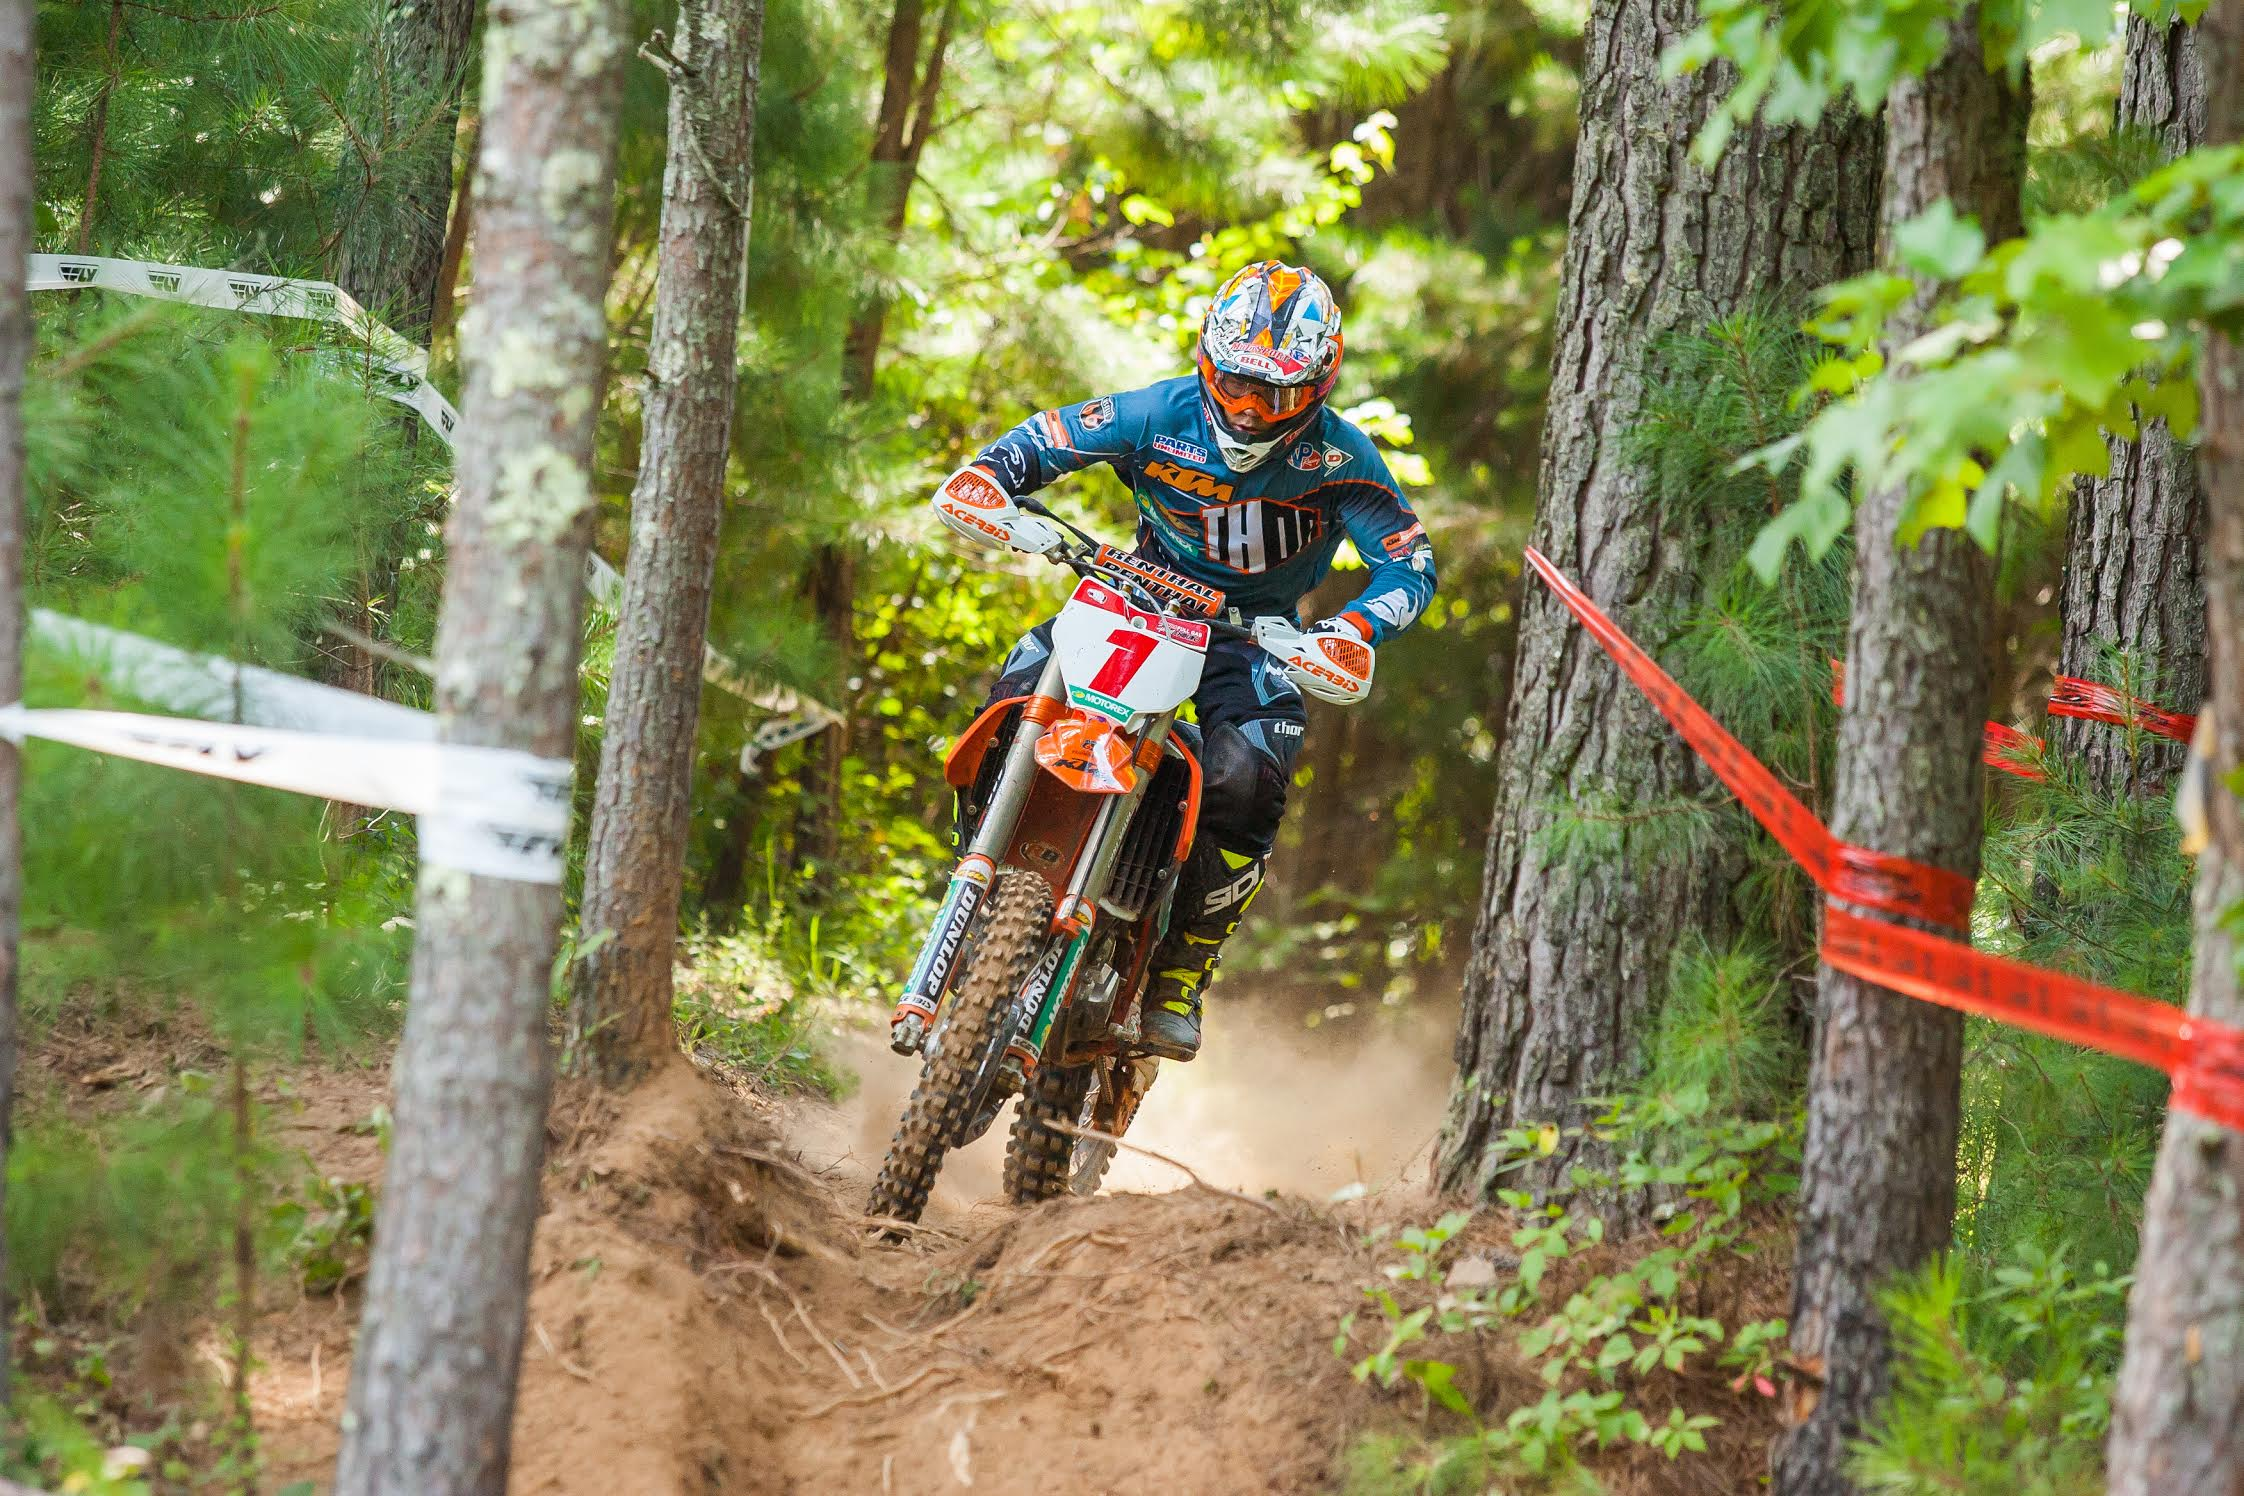 Russell Sweeps Rockcrusher Farm Sprint Enduro